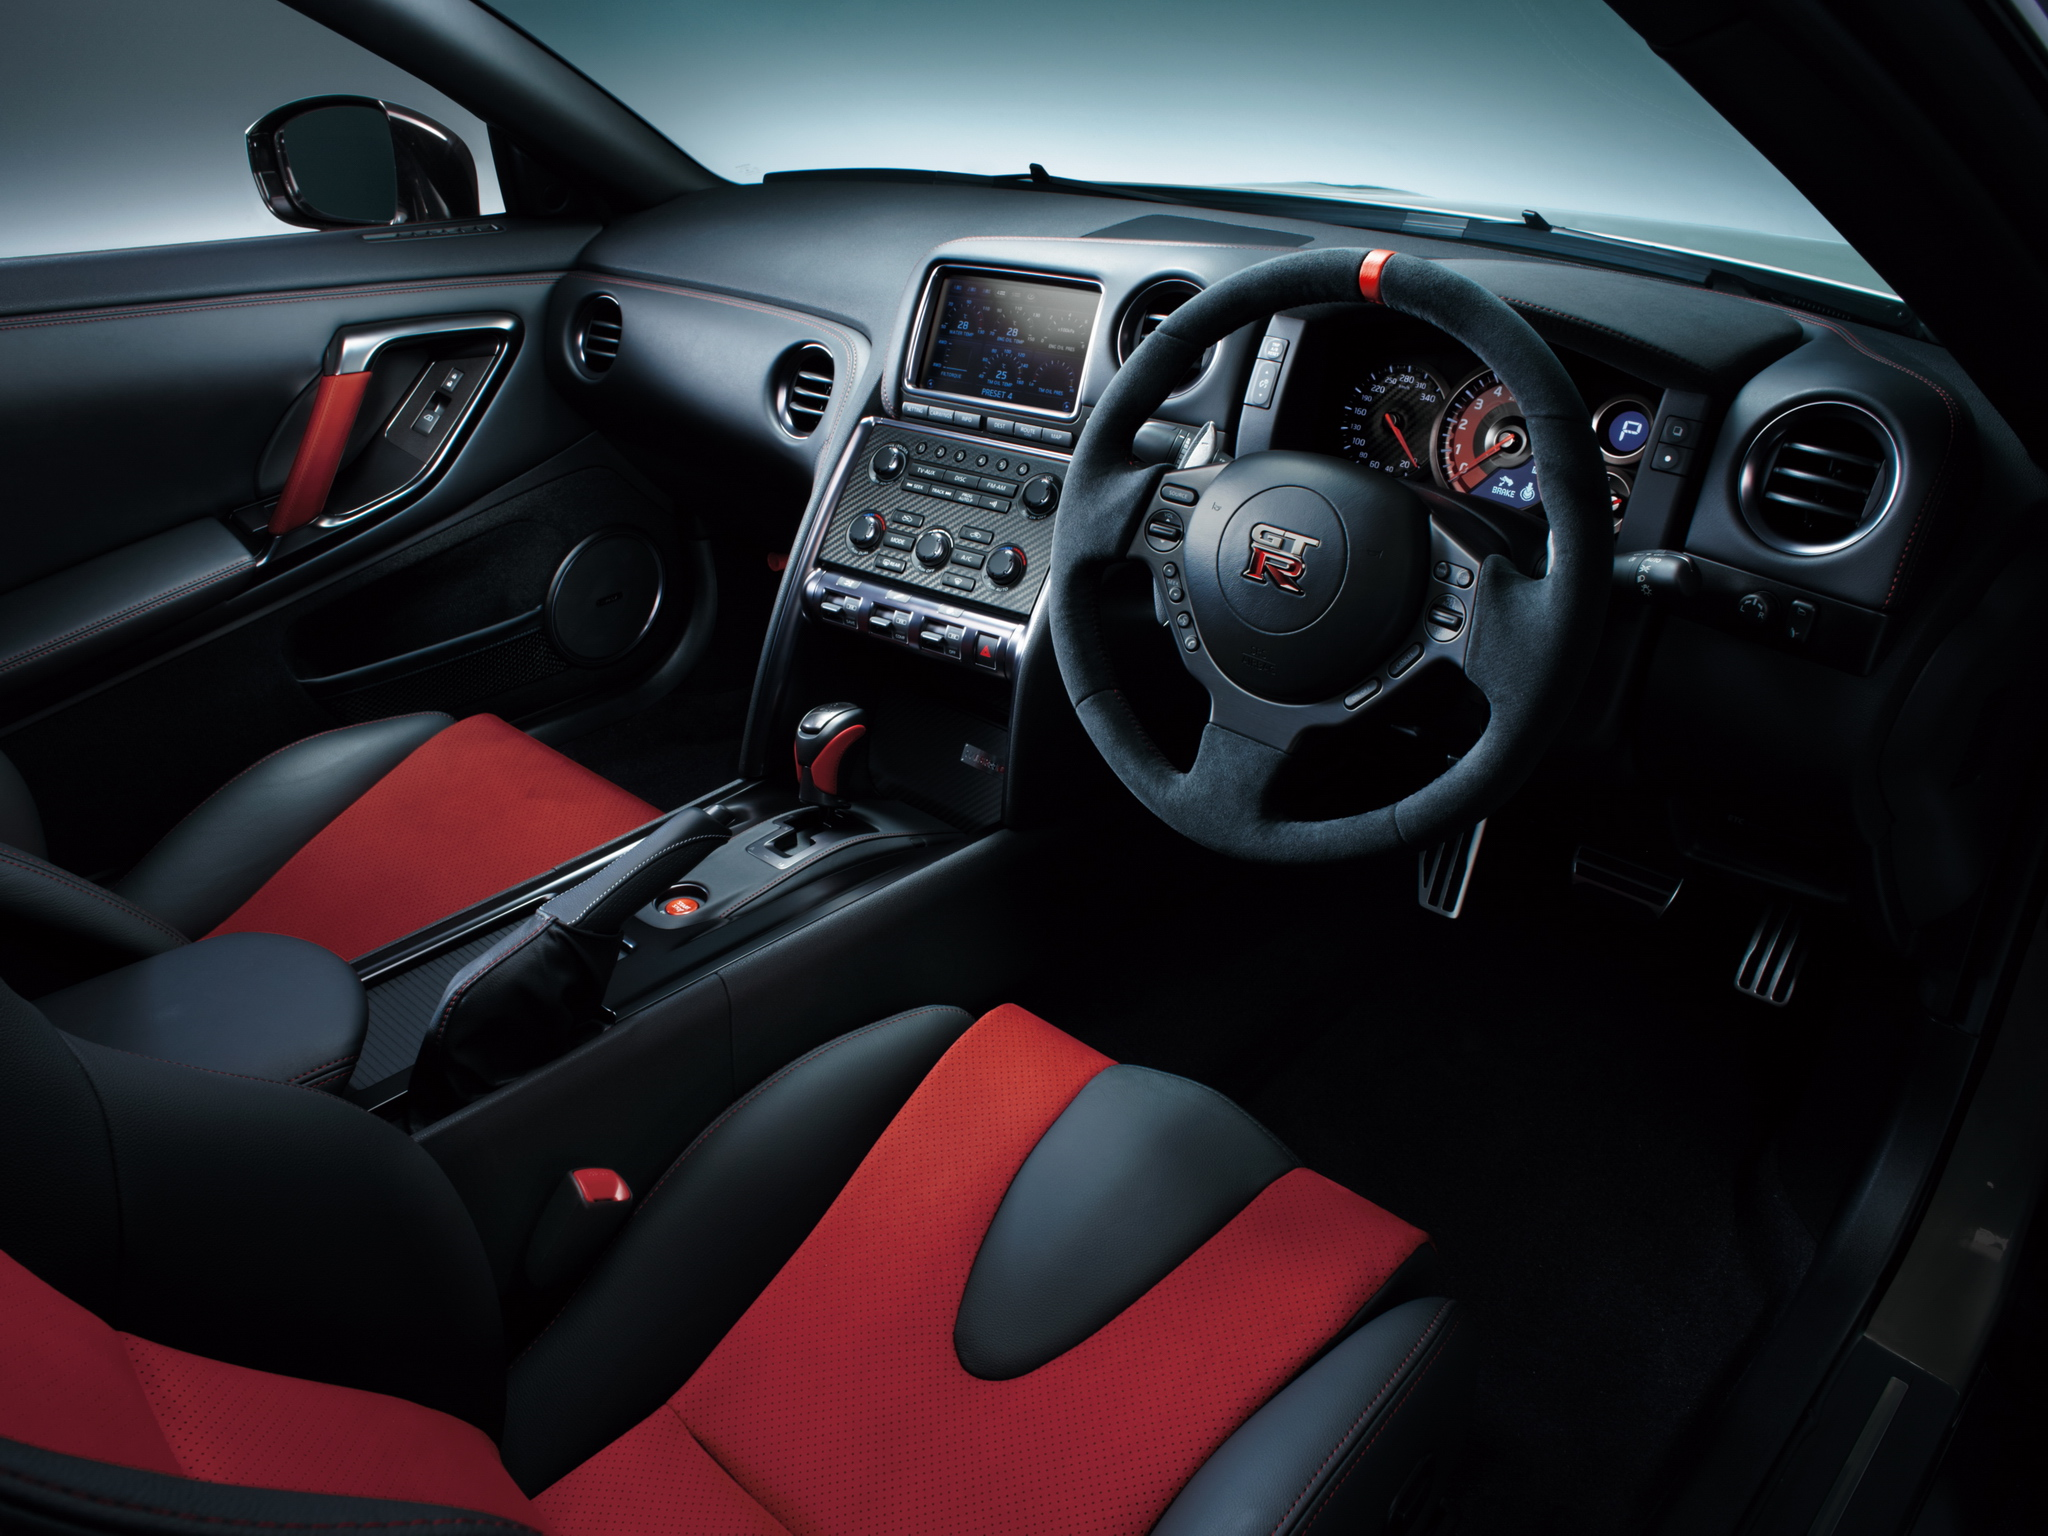 2014 Nismo Nissan Gtr R35 Supercar Interior F Wallpaper